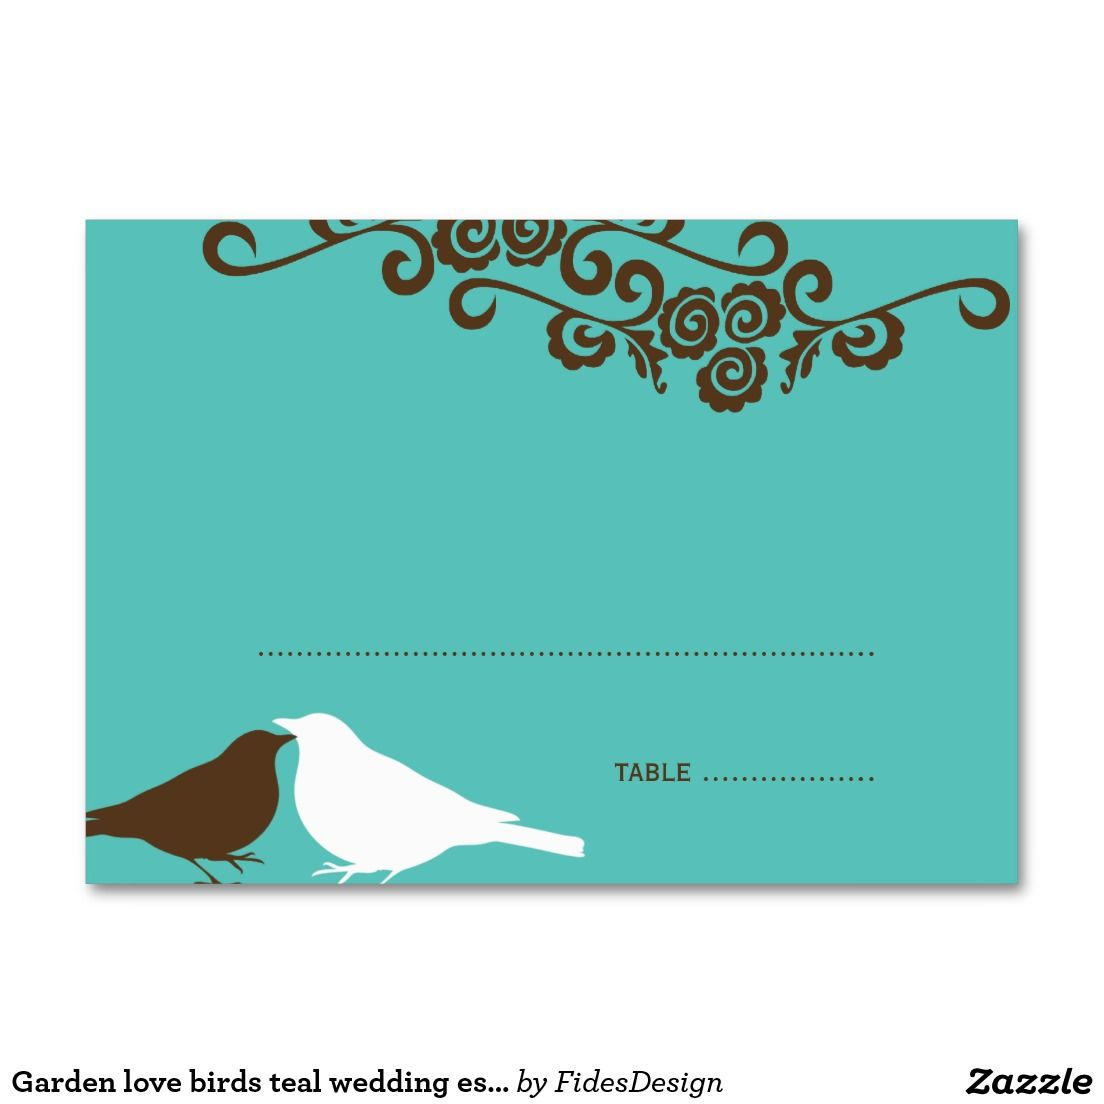 Garden love birds teal wedding escort place card | Teal weddings ...